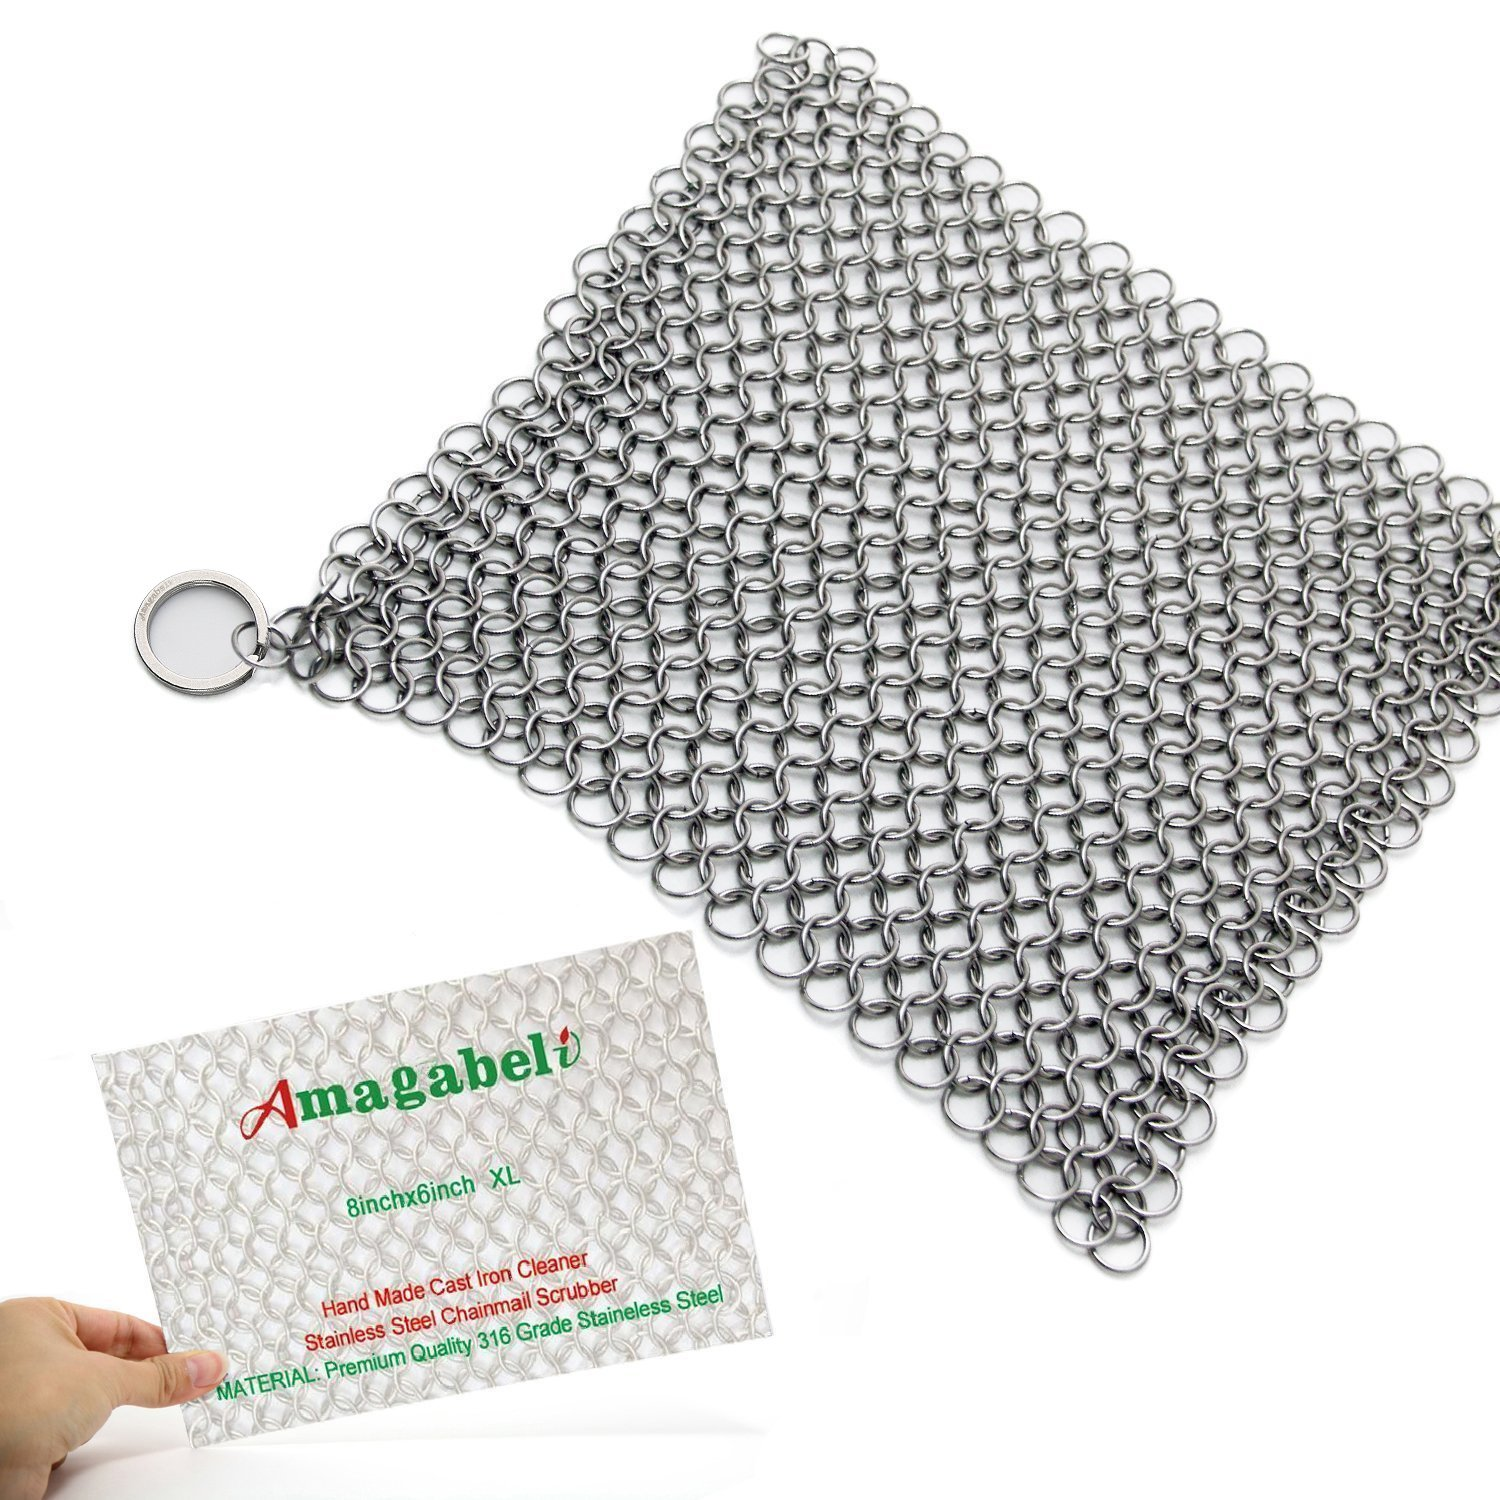 Cast Iron Chainmail Scrubber is great to make your favorite easy slow cooker recipes camping with your Dutch oven using a slow cooker conversion chart!